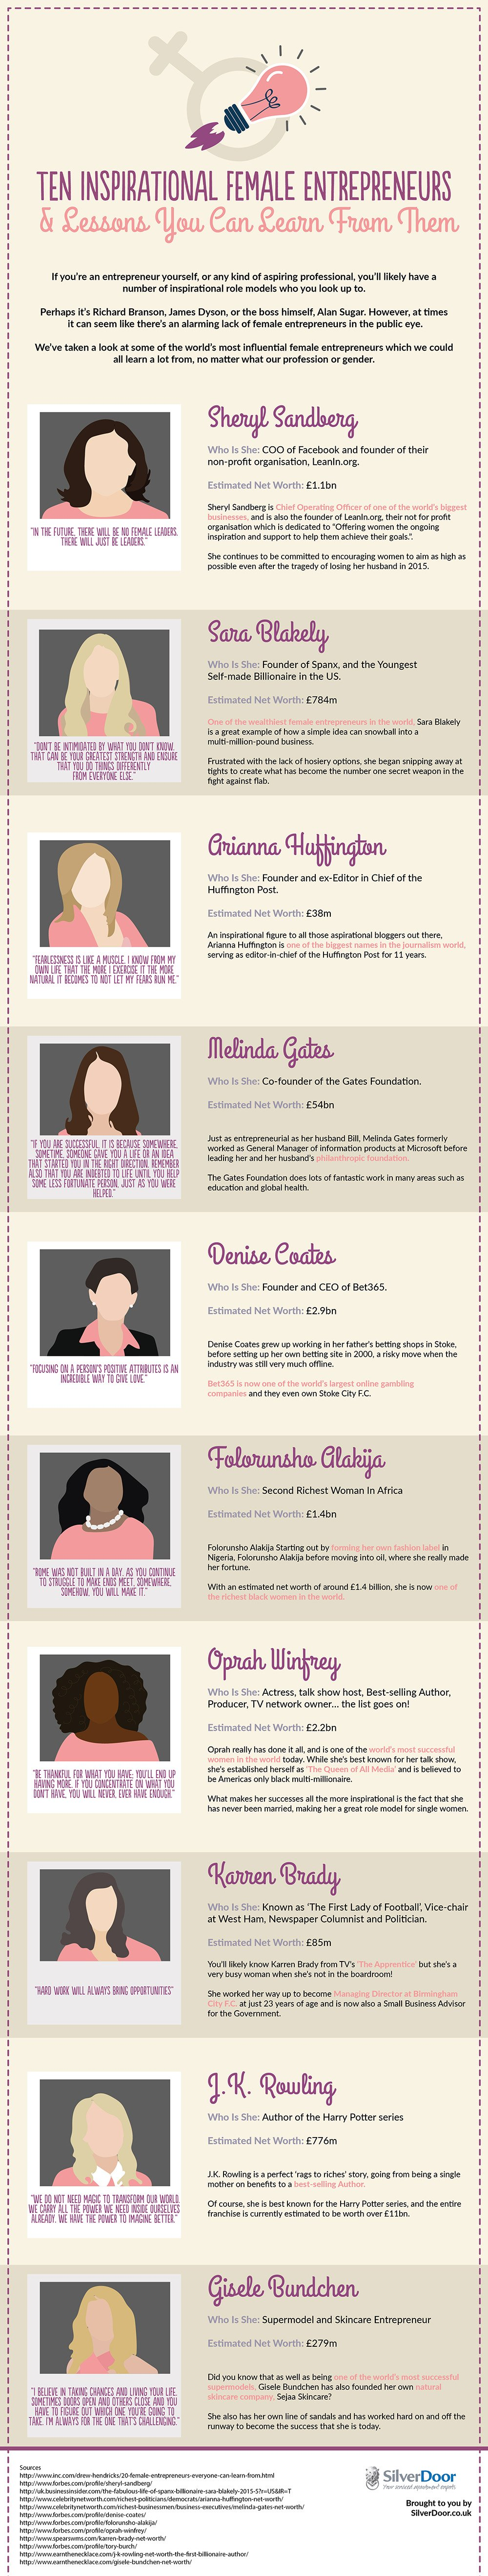 inspirational-female-entrepreneurs.jpg